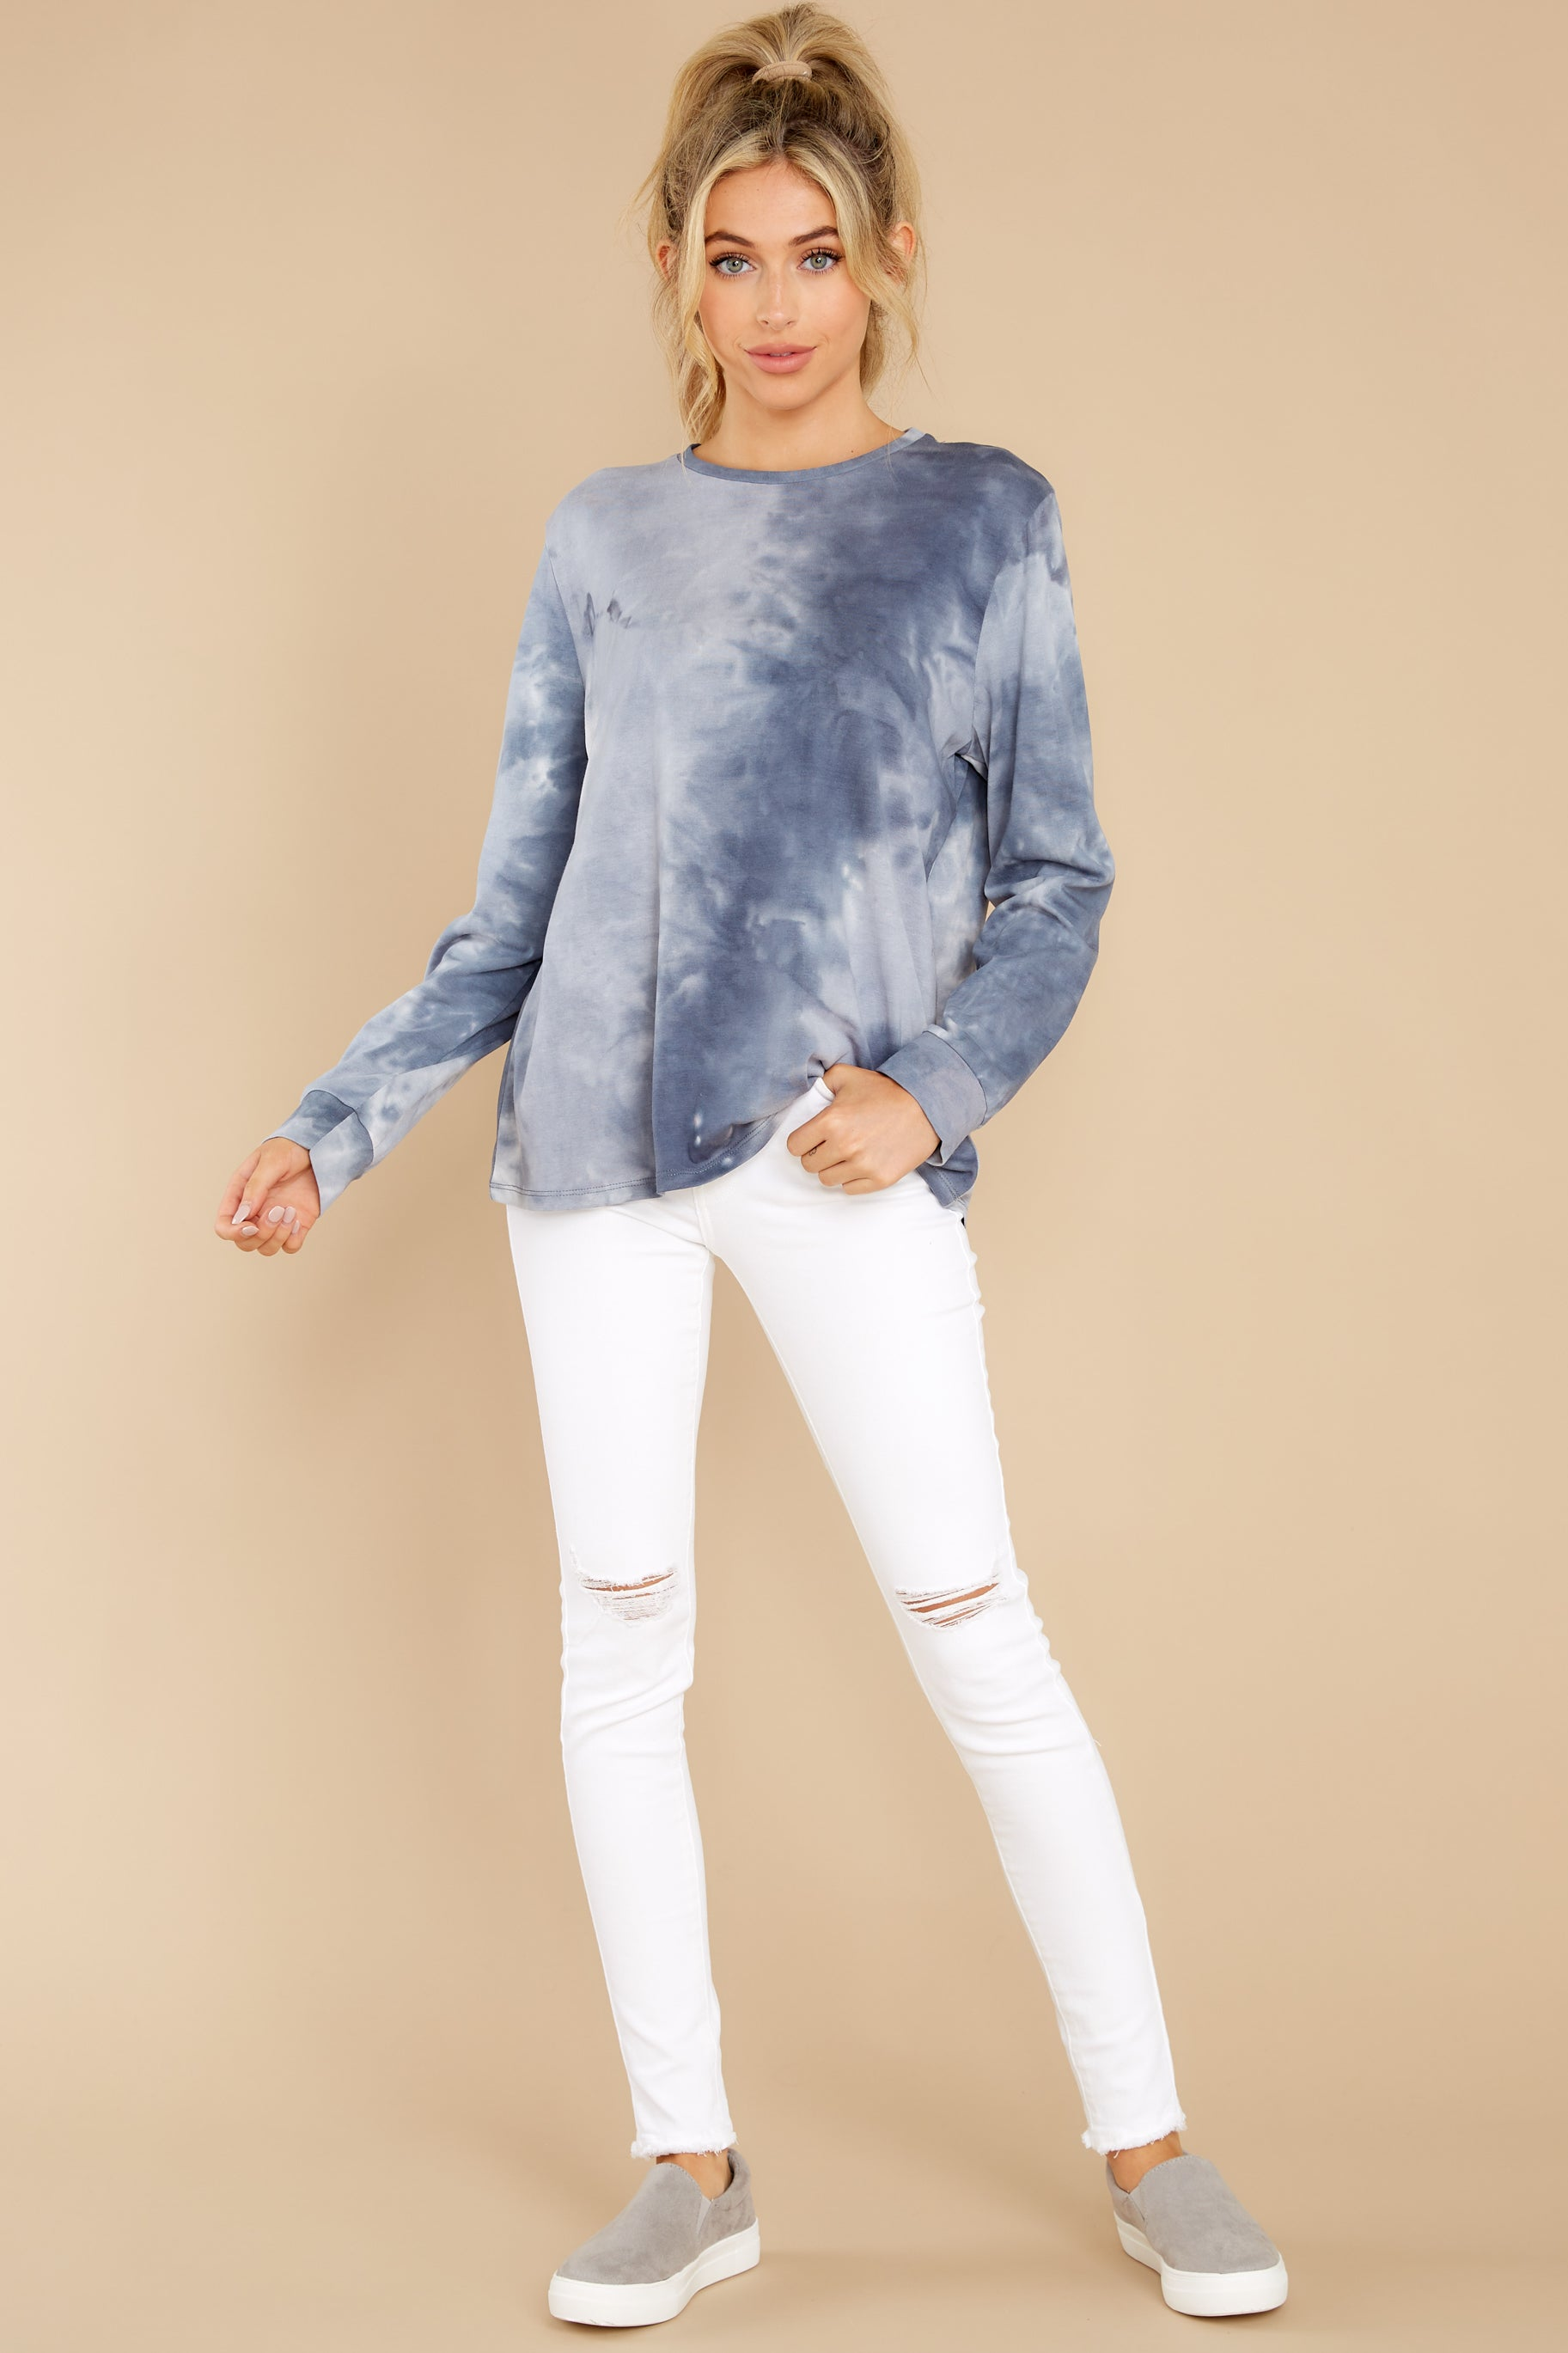 4 On Your Mind Slate Blue Tie Dye Top at reddress.com